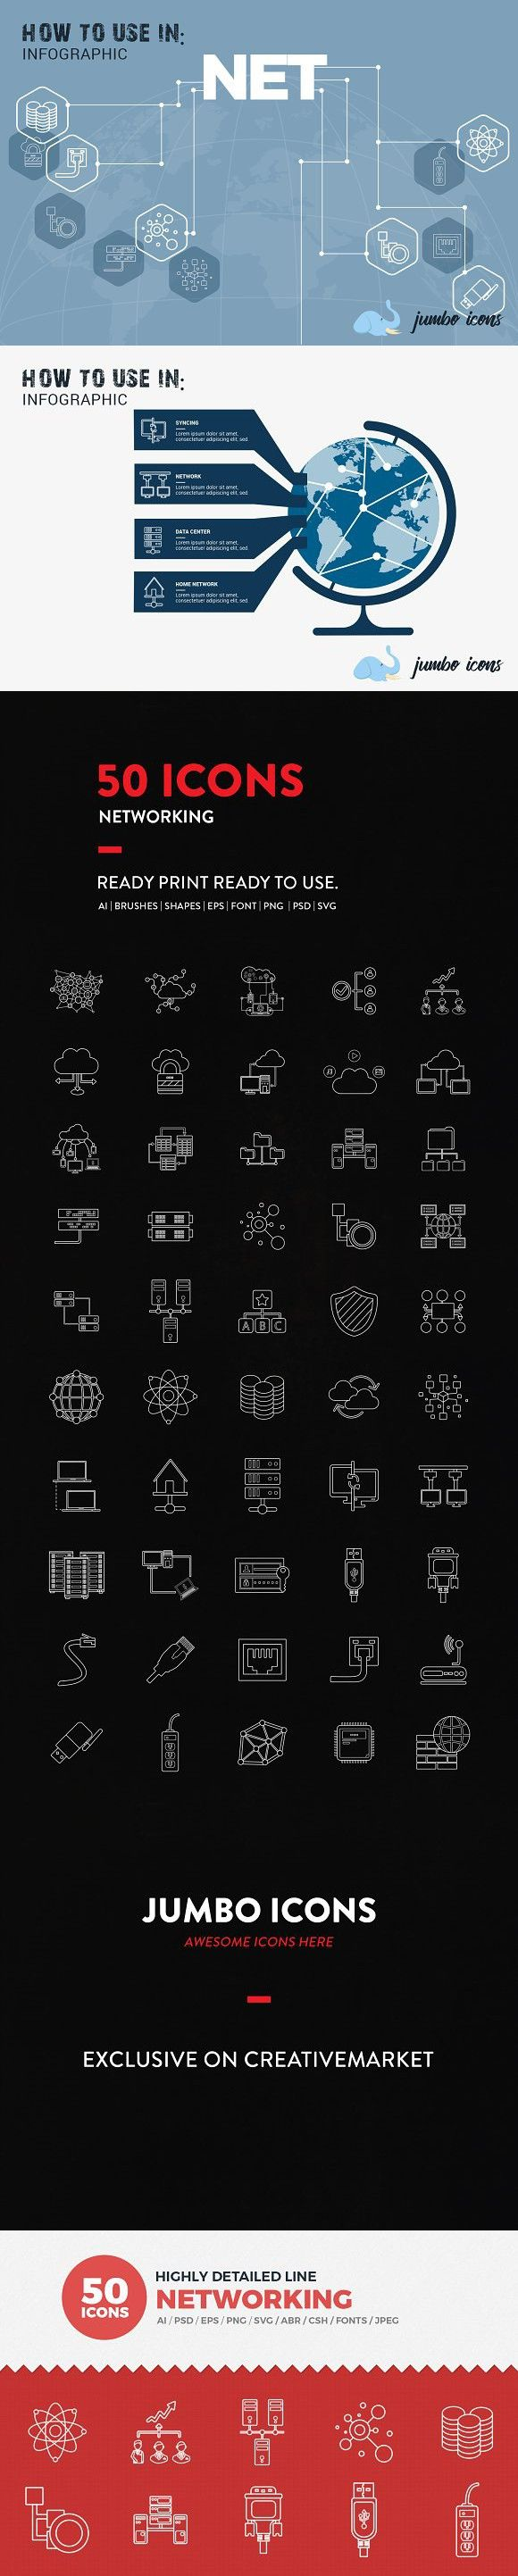 JI-Line Networking Icons Set #networkingicons #accesspoint